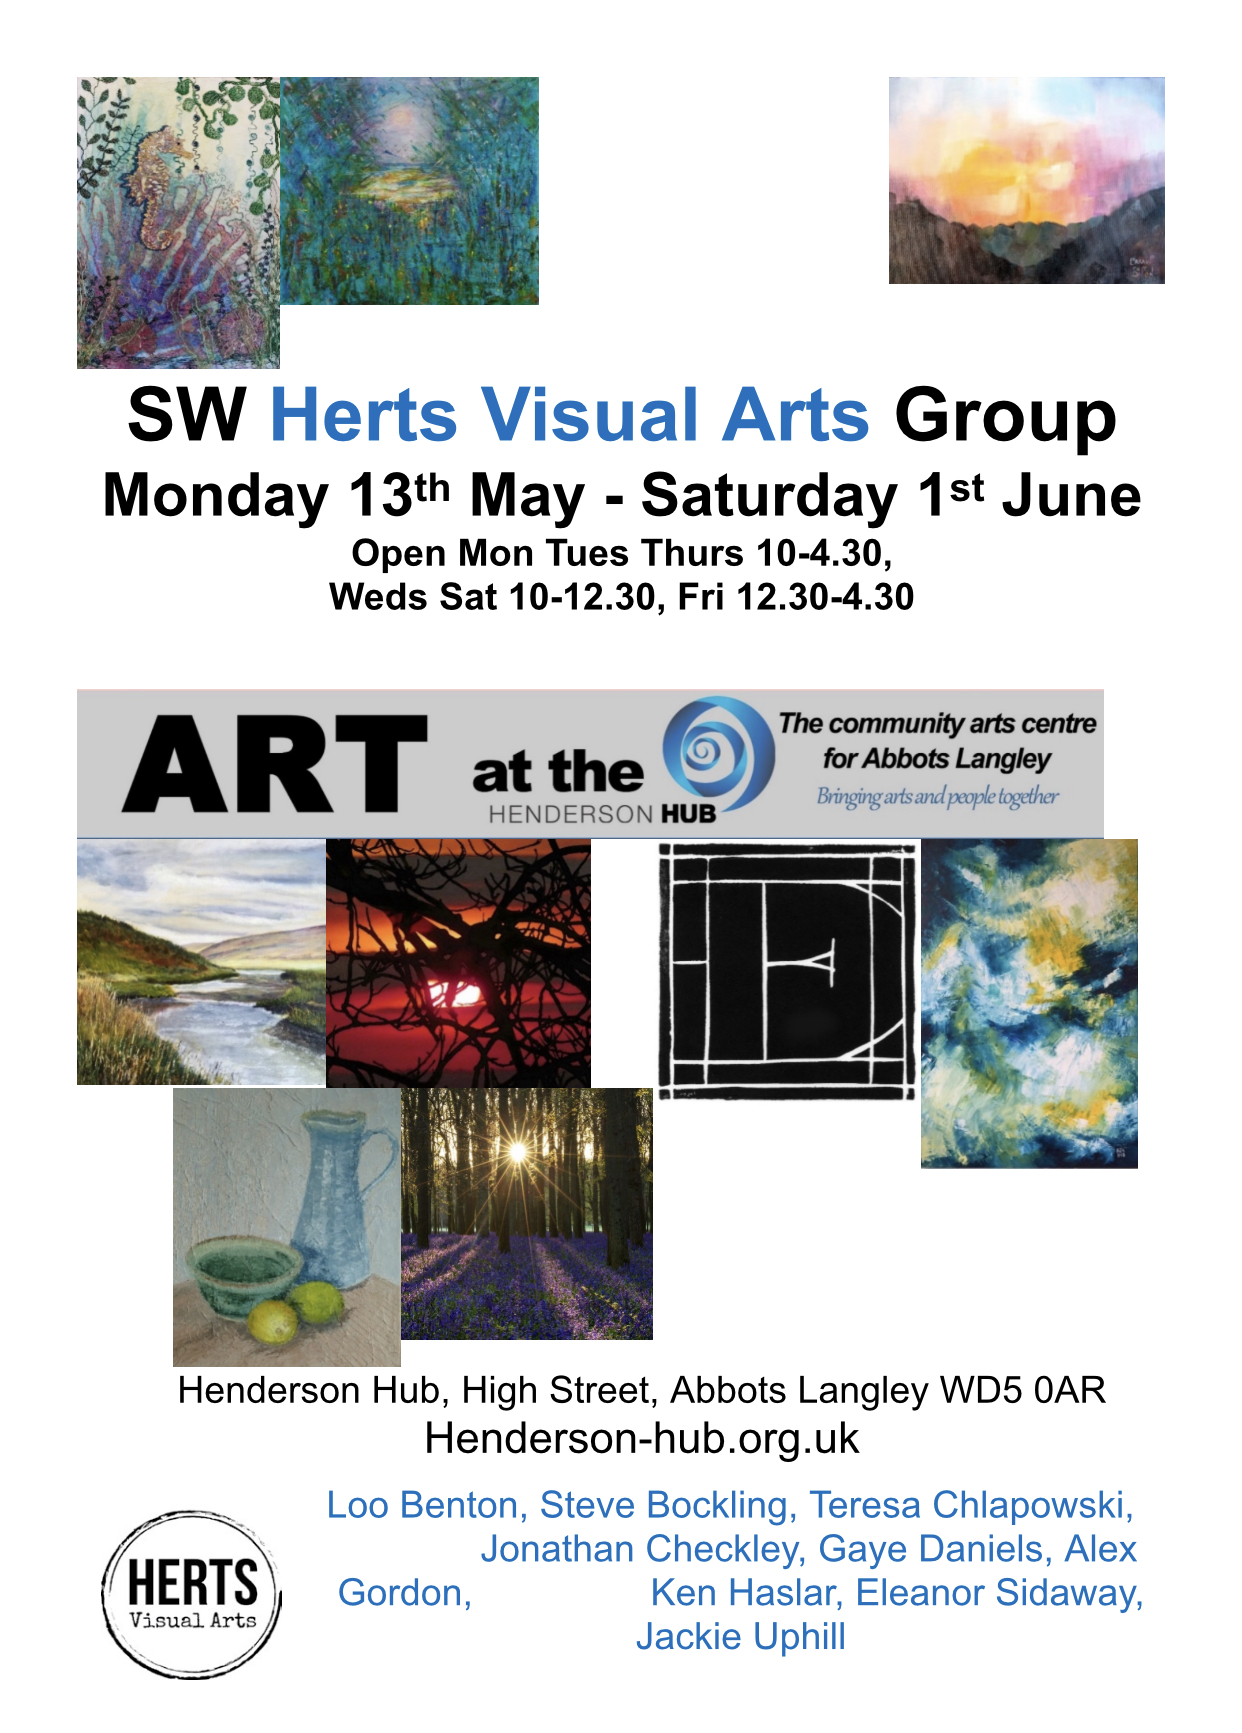 SW Herts Art Exhibition at The Henderson Hub